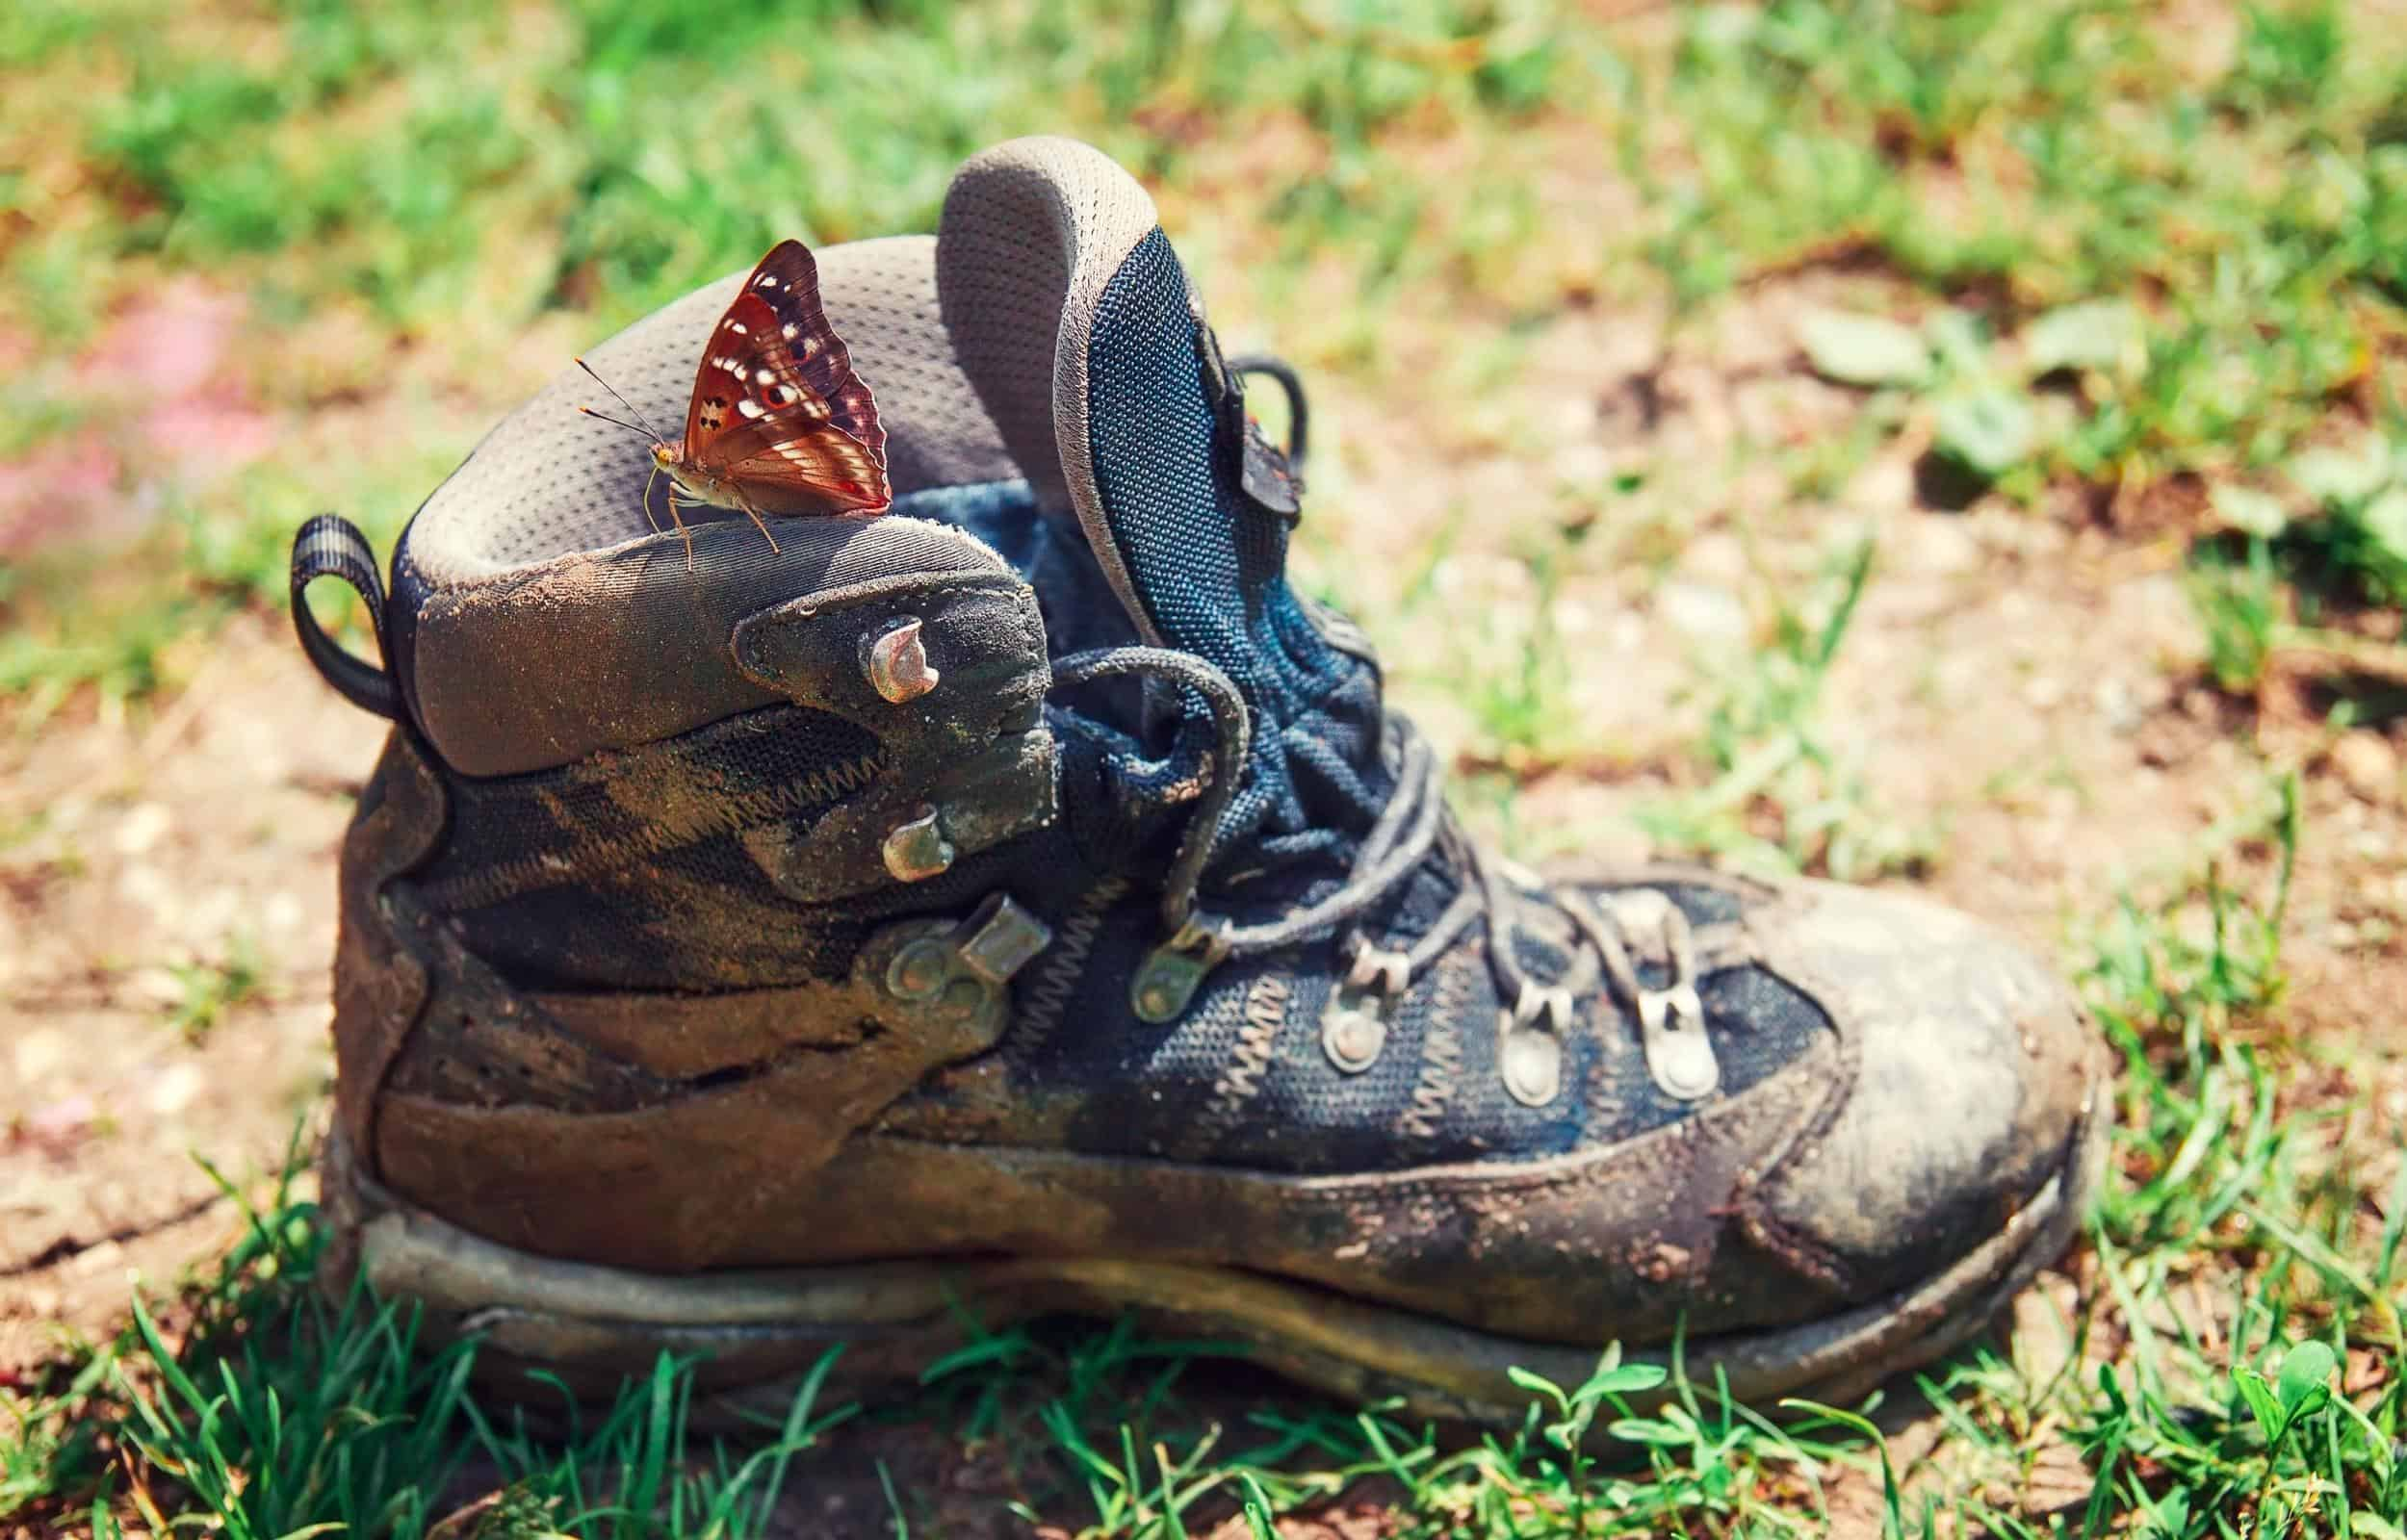 Dirty hiking boot clean butterfly